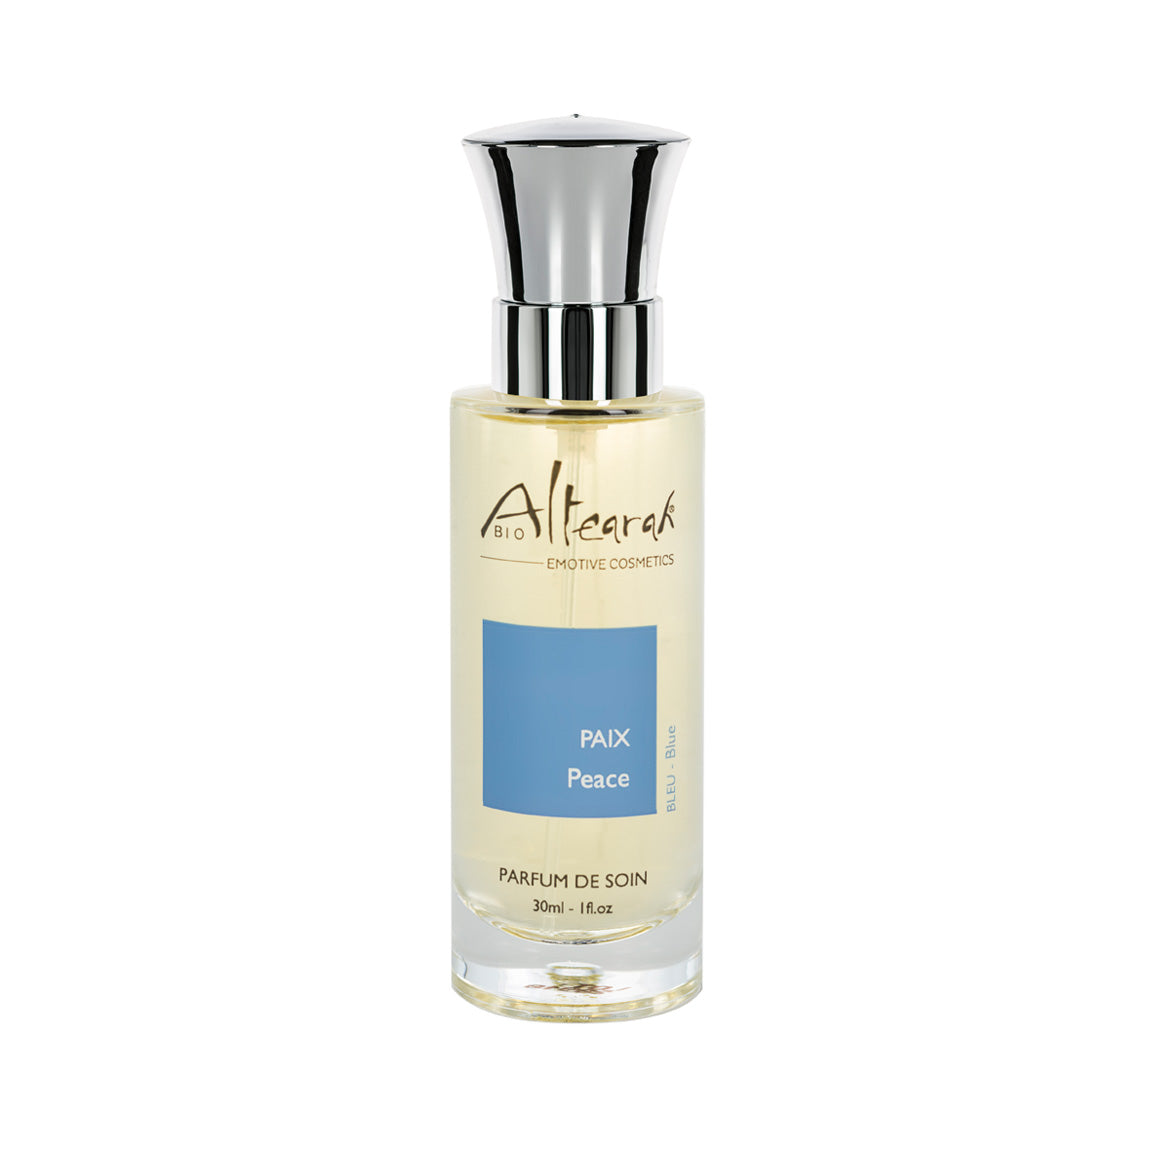 Altearah Parfum de Soin Blue / Peace